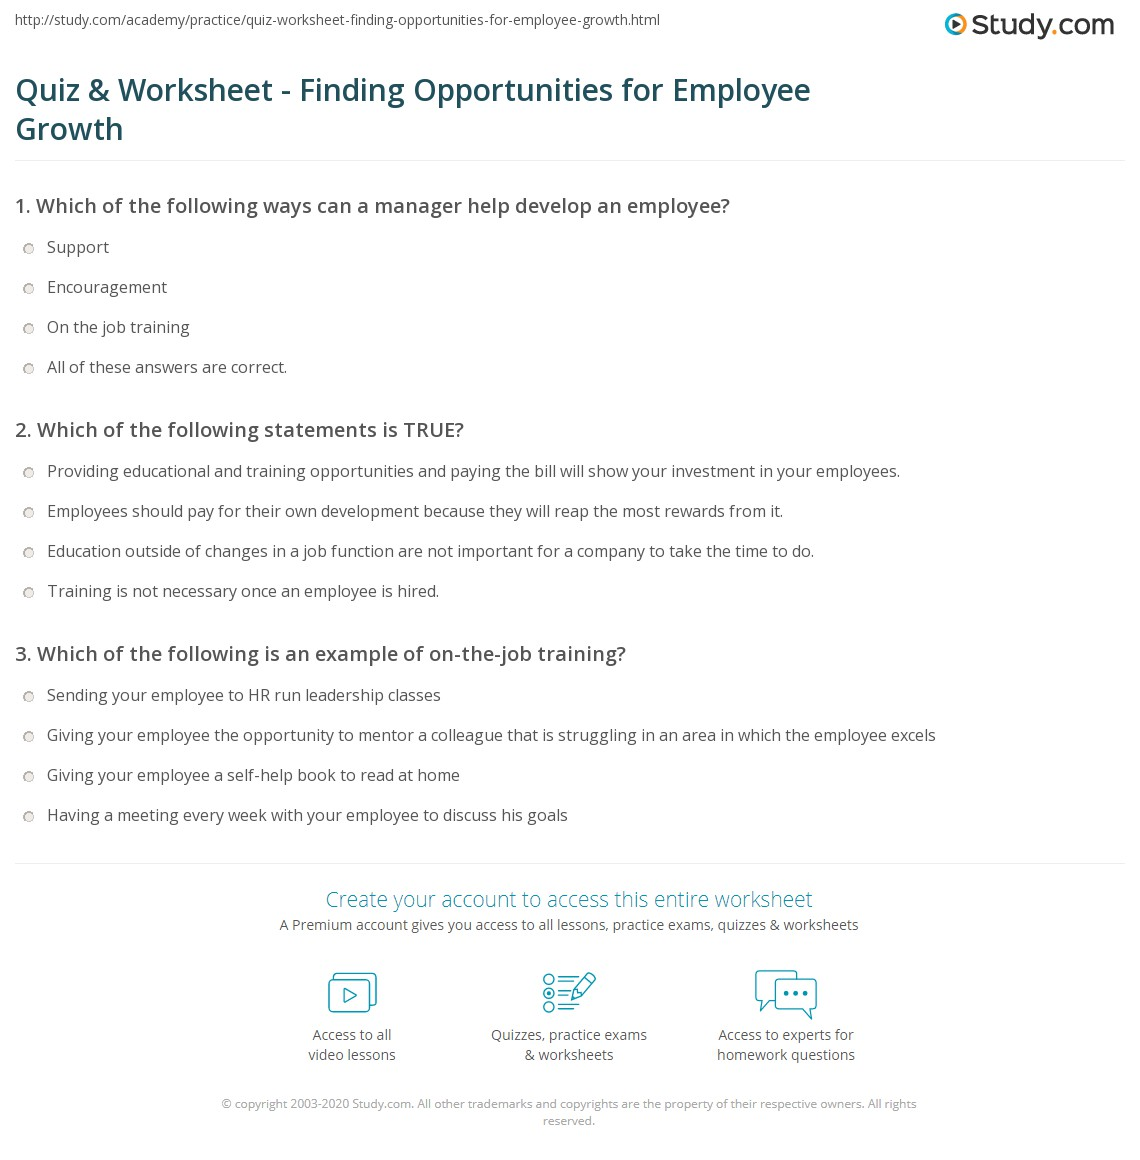 Quiz & Worksheet - Finding Opportunities for Employee Growth | Study.com